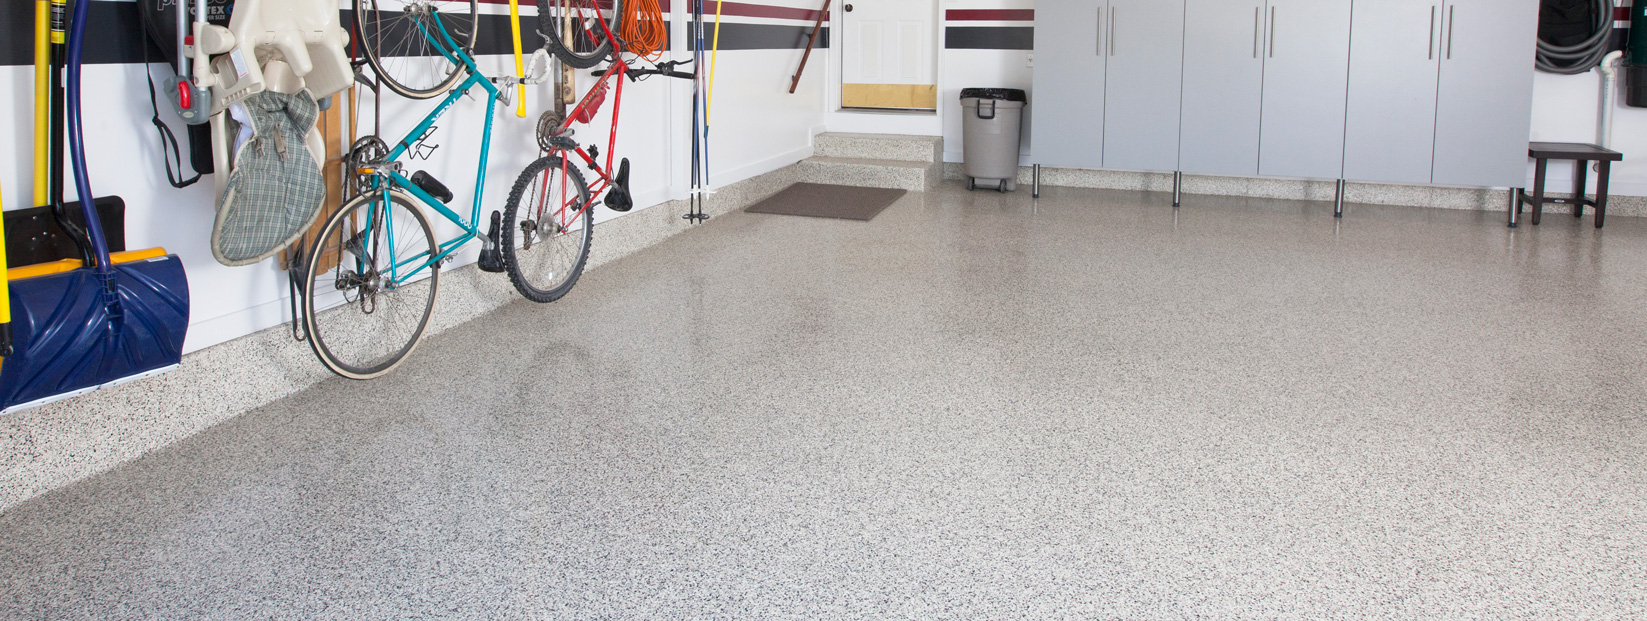 Garage Floor Coating Tucson Cost Garage Floor Coating Columbia Midlands Storage Systems